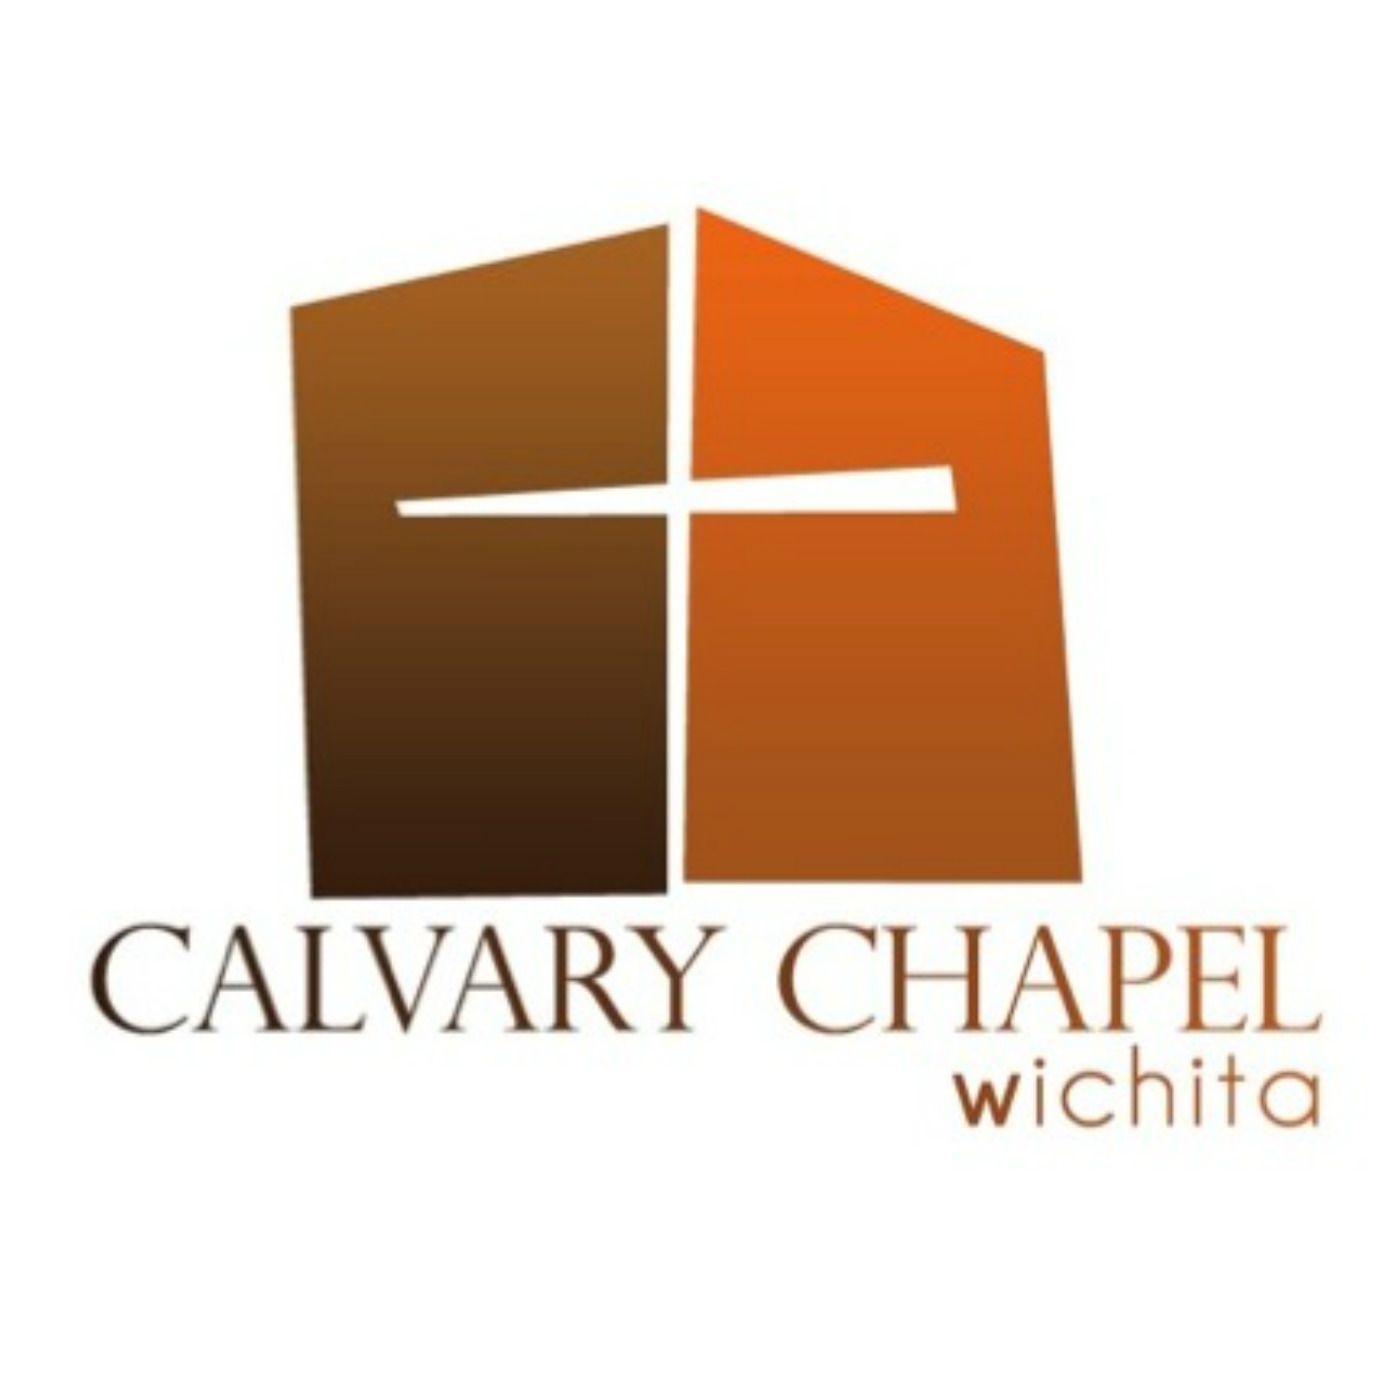 Calvary Chapel Wichita